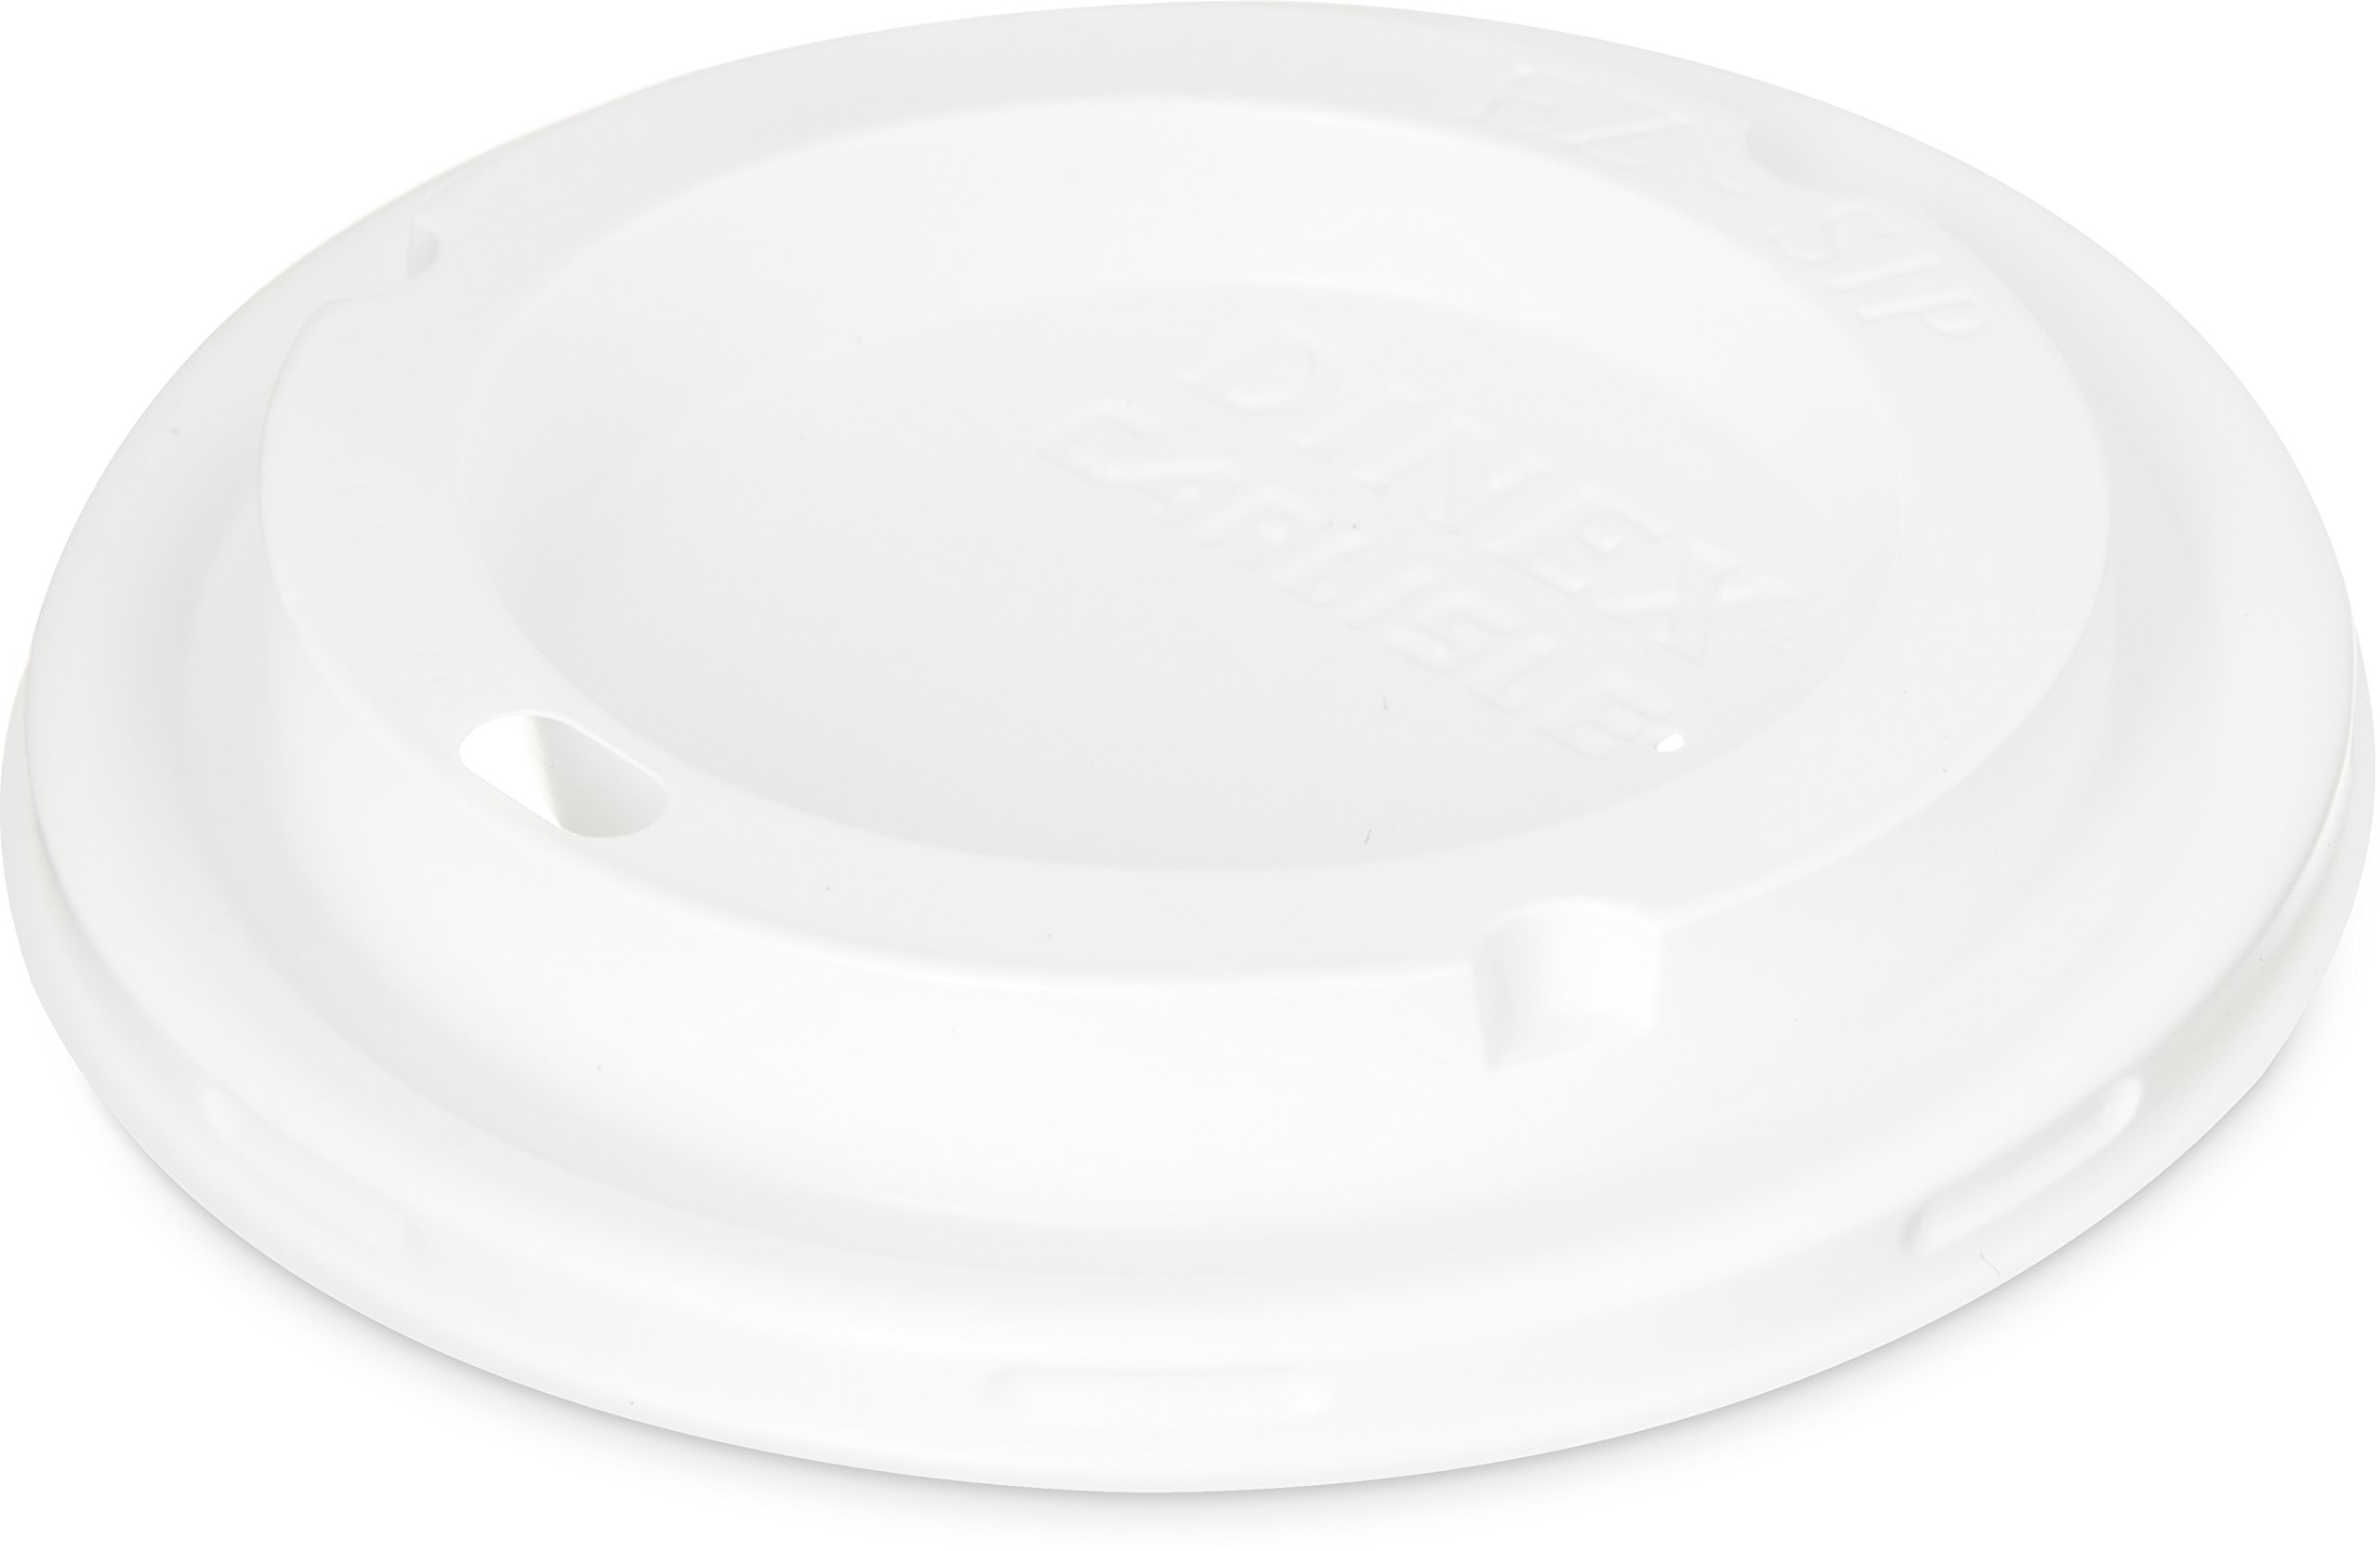 Dinex DX50008775 Polycarbonate Disposable EZ-Sip Lid, 3-1/2'' Diameter, For Fenwick 8oz Insulated Mug and 5oz Insulated Bowl (Case of 1000)